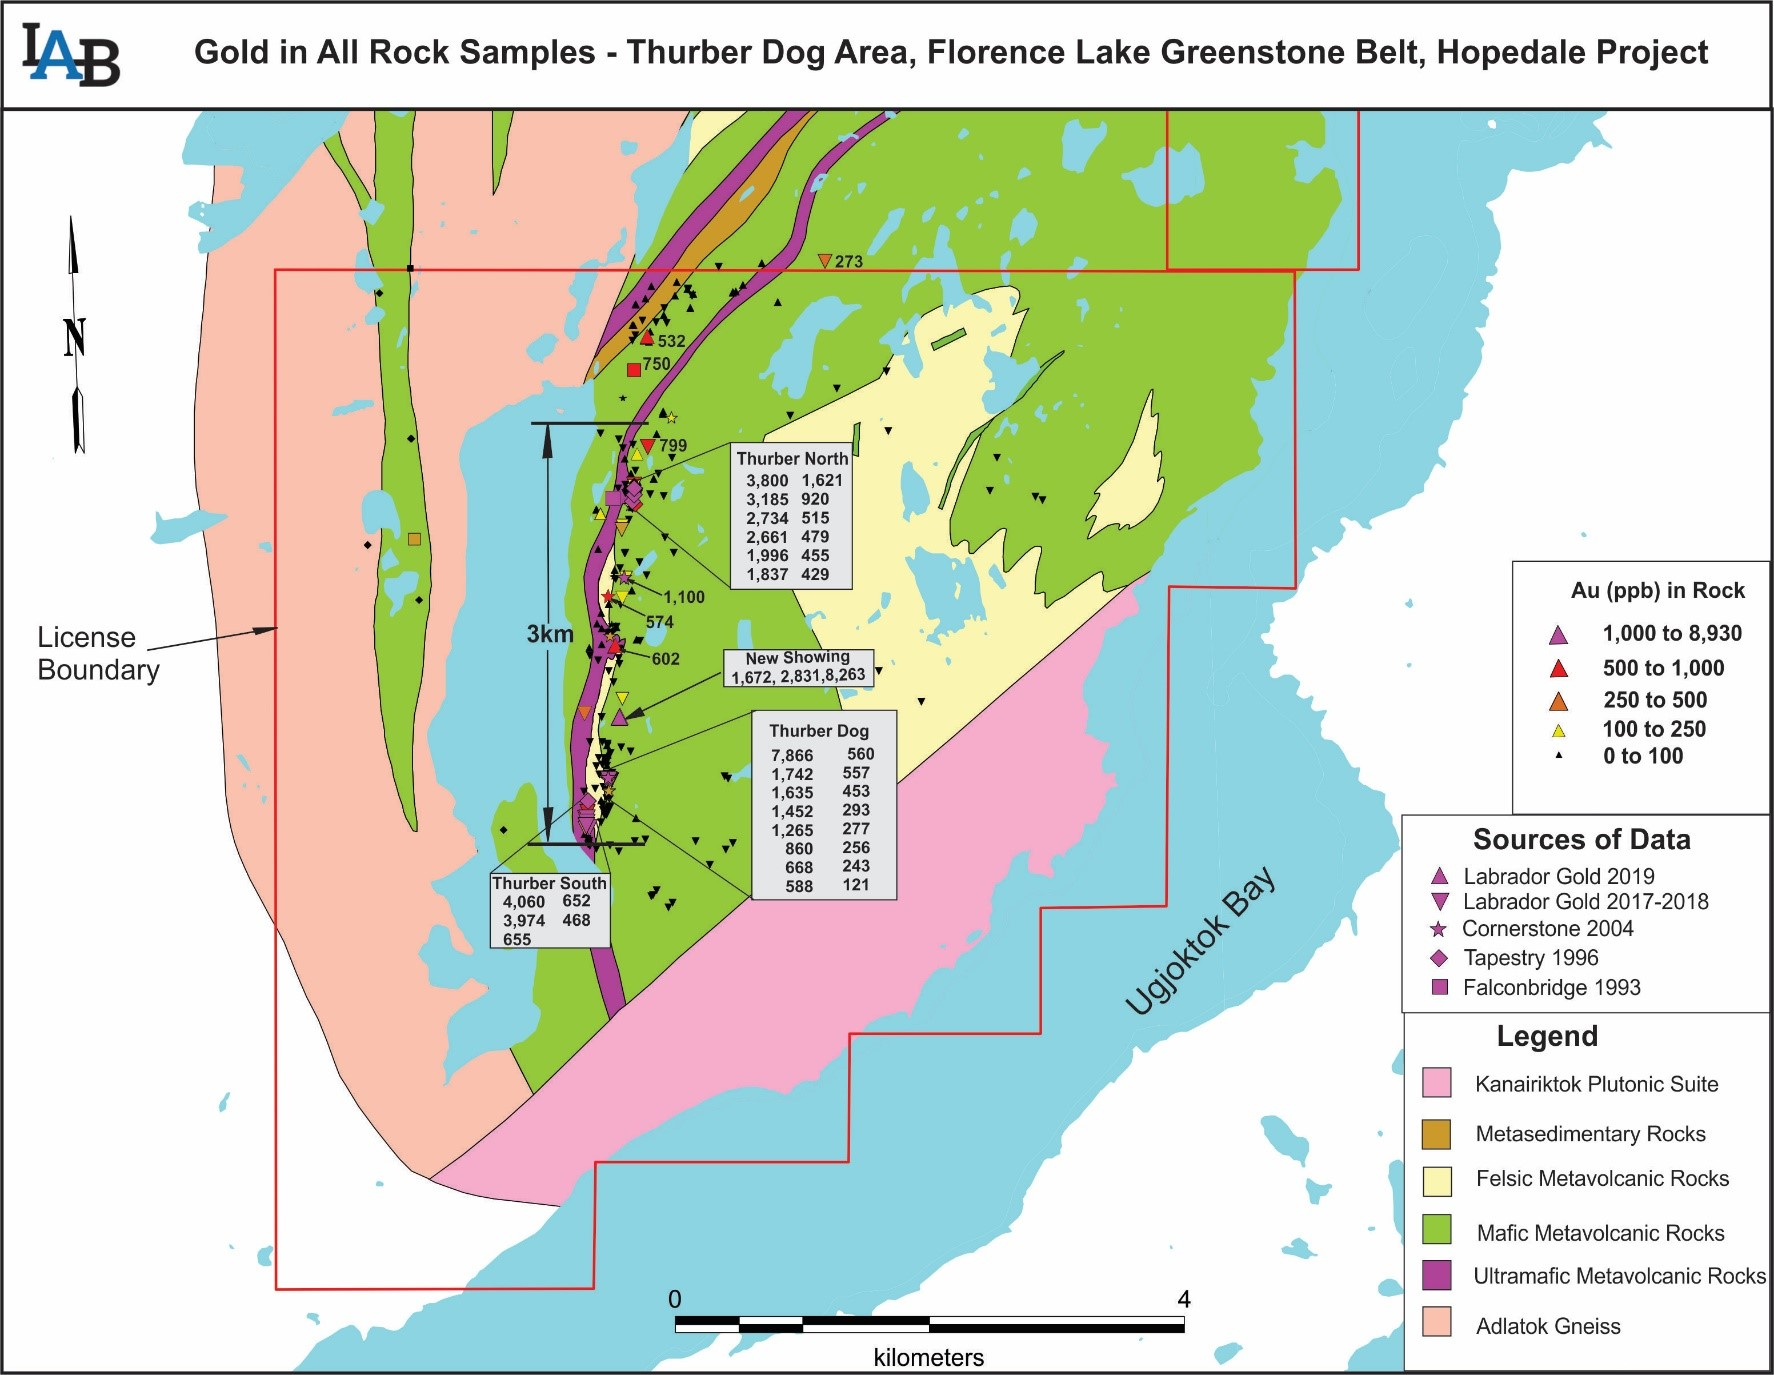 Figure 1: Compilation of all Labrador Gold and historical rock samples in the Thurber Dog area indicating the location of the new showing.